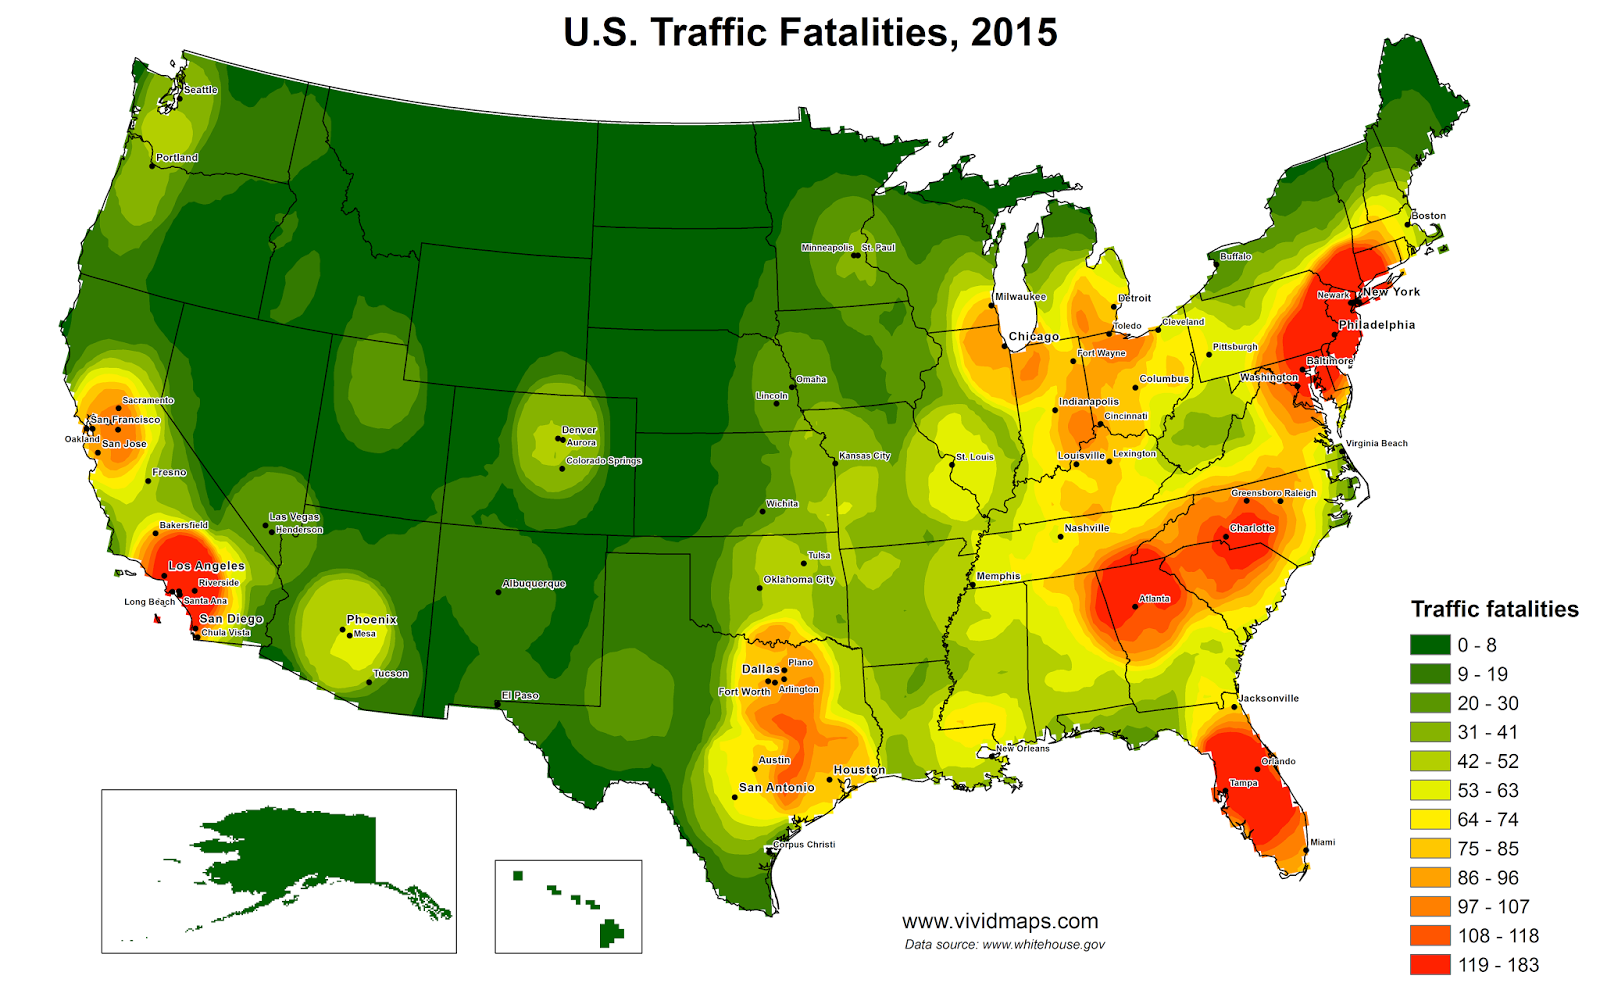 U.S. Traffic Fatalities Heat Map (2015)